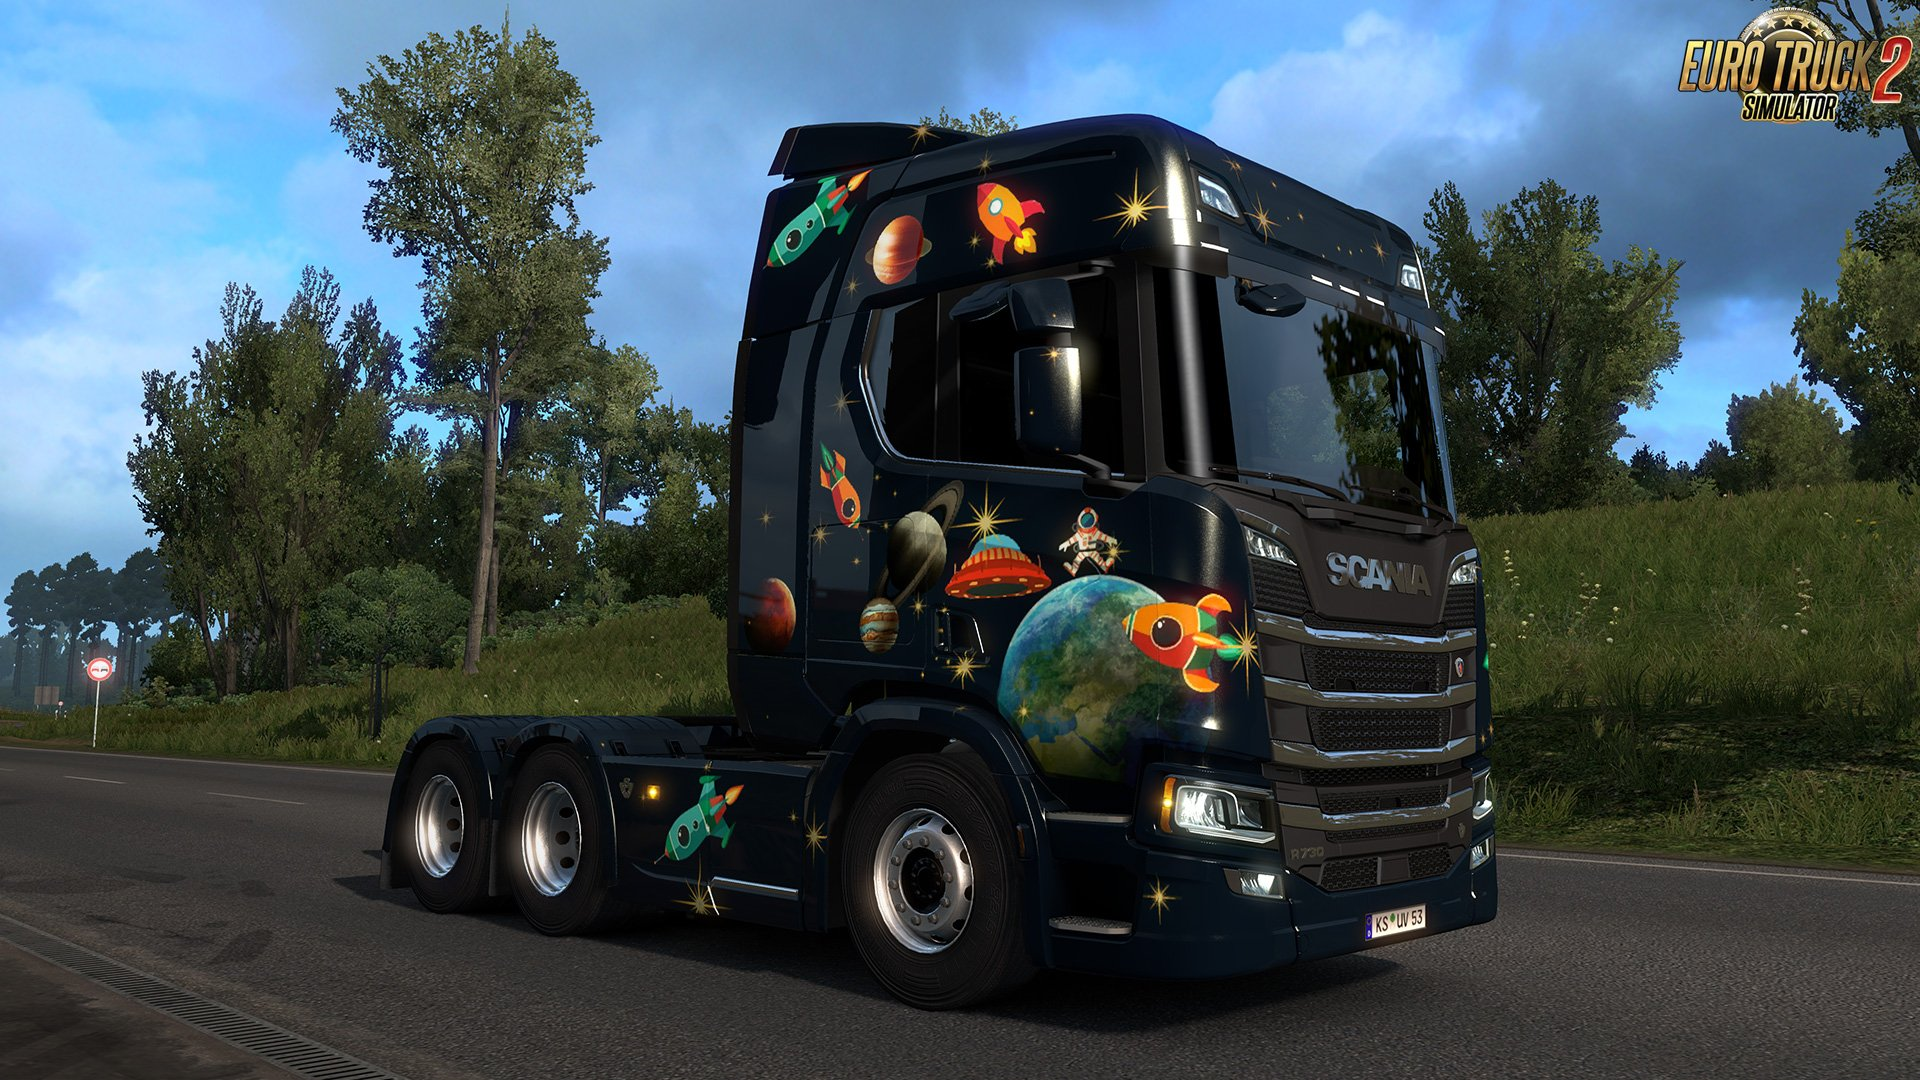 download space paint jobs pack dlc for euro truck simulator 2. Black Bedroom Furniture Sets. Home Design Ideas